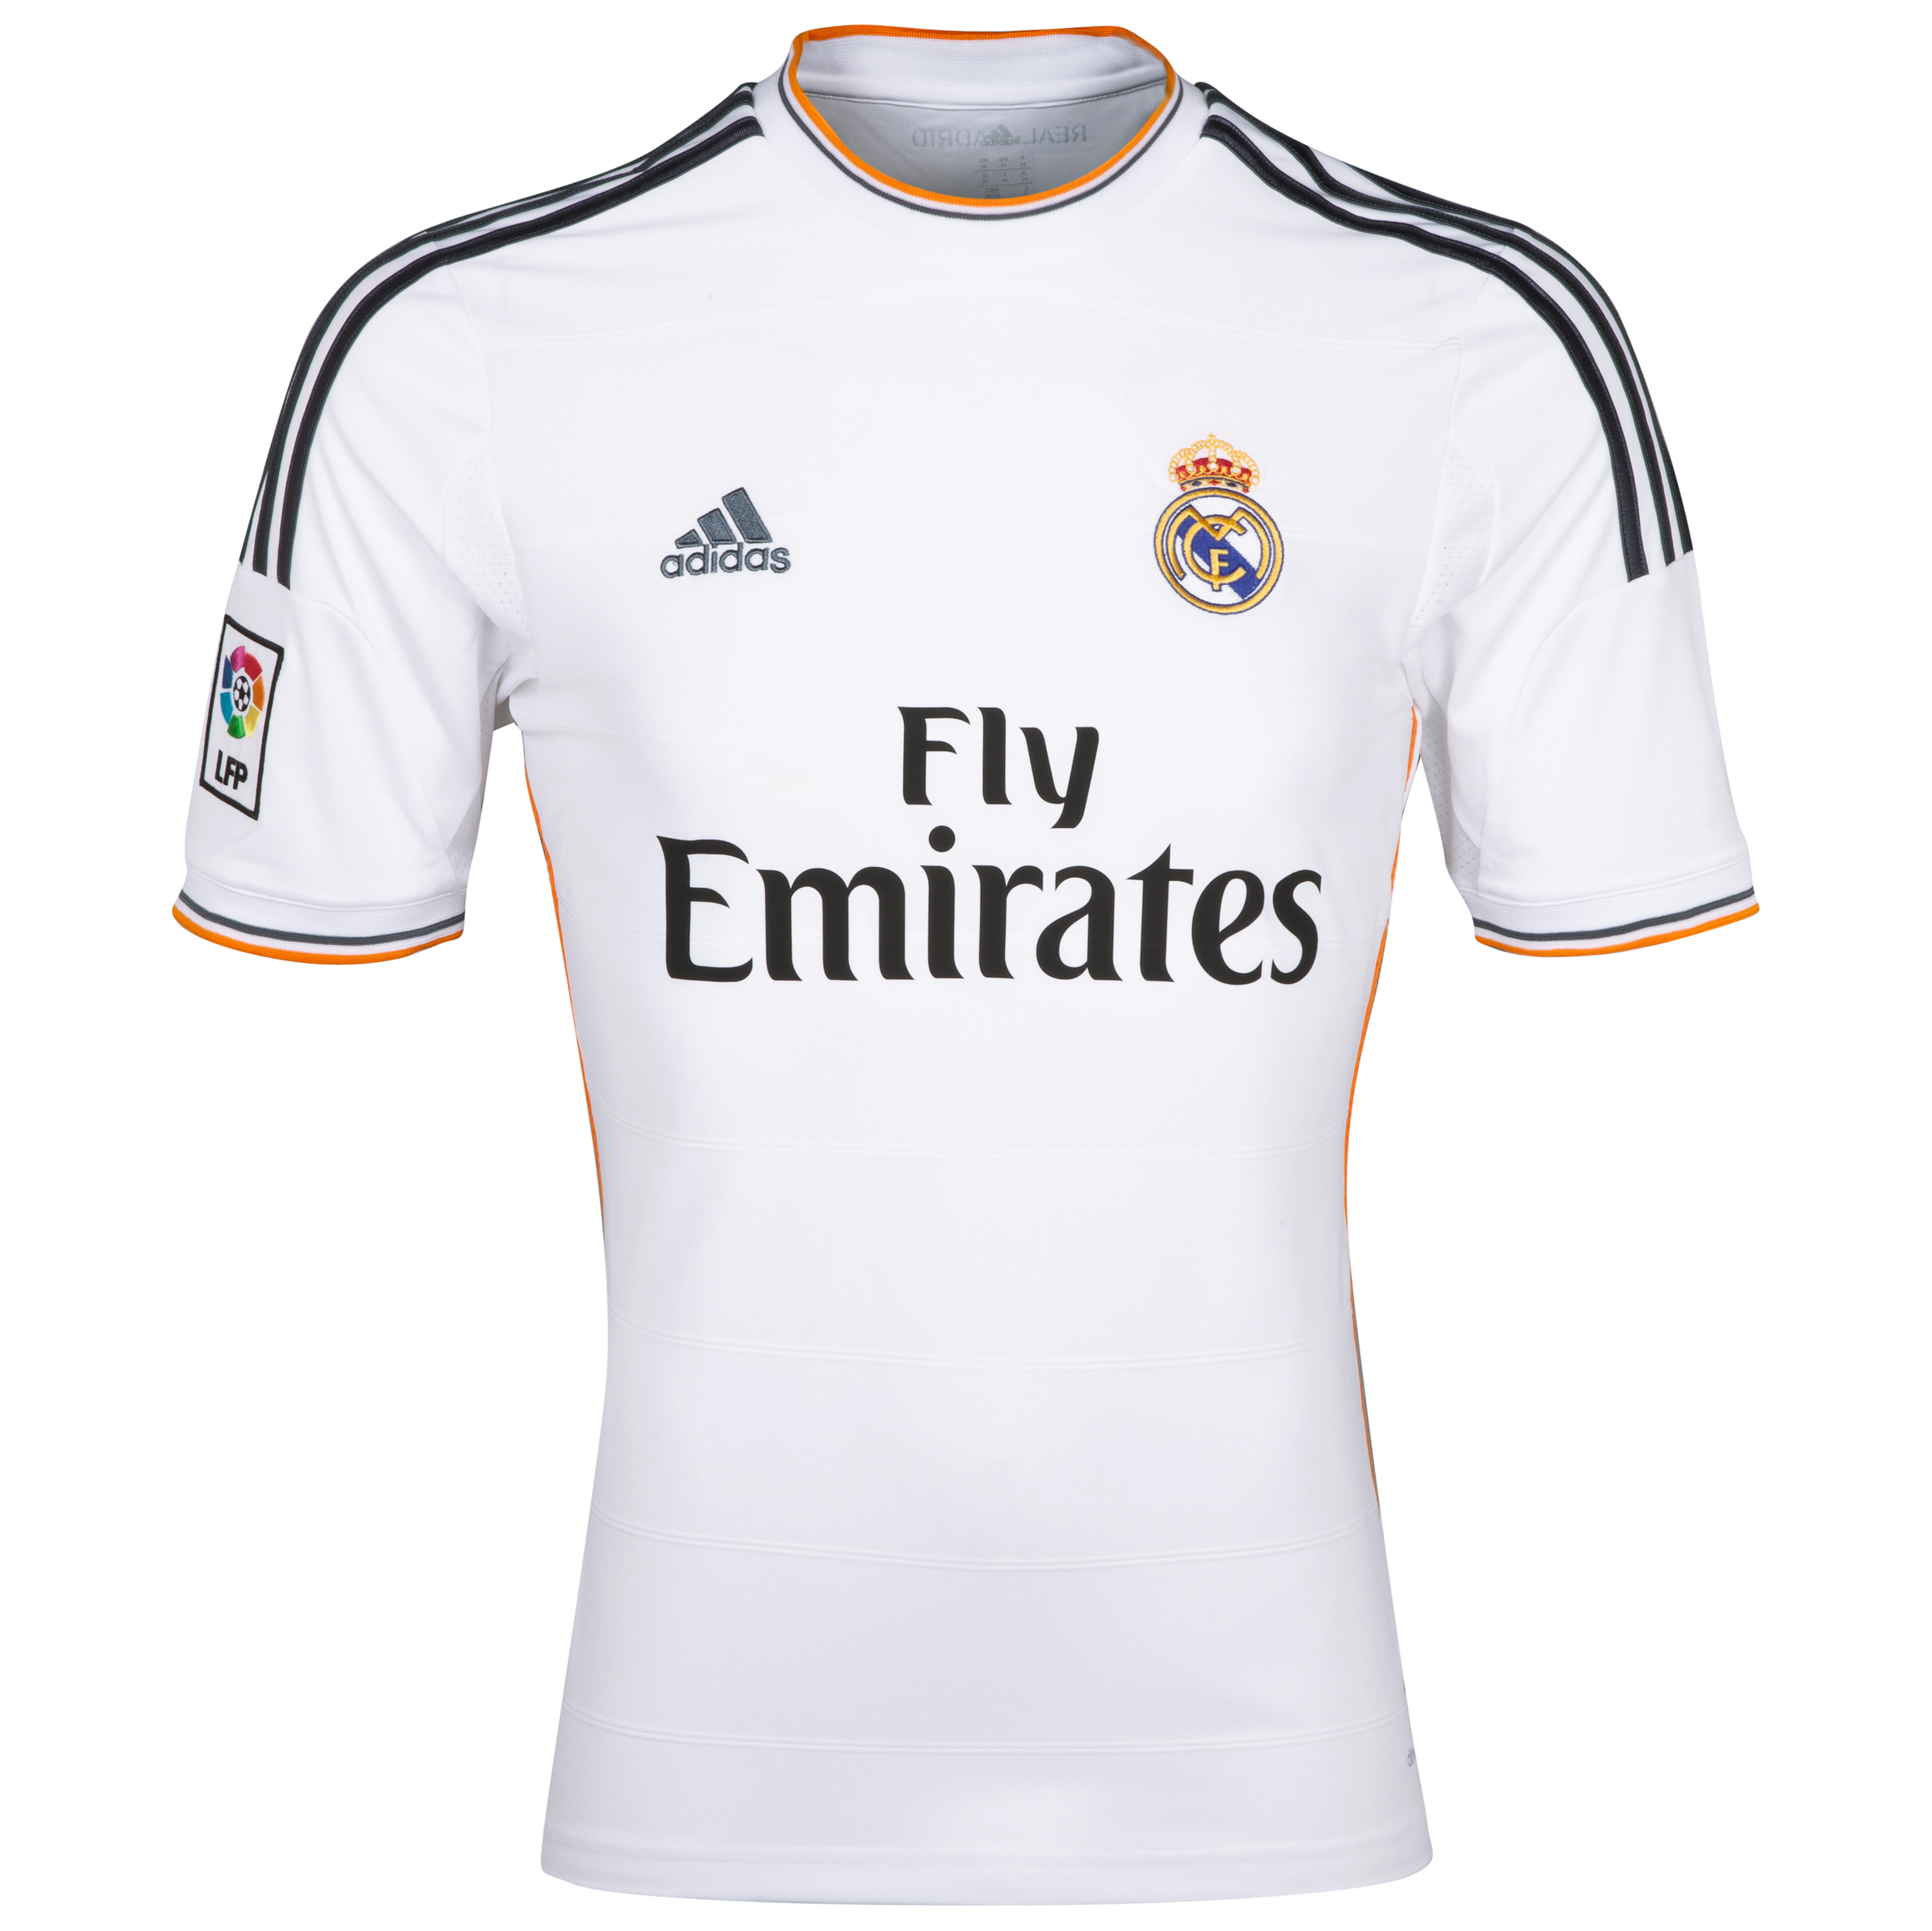 Buy Real Madrid Home Kit 2013/14